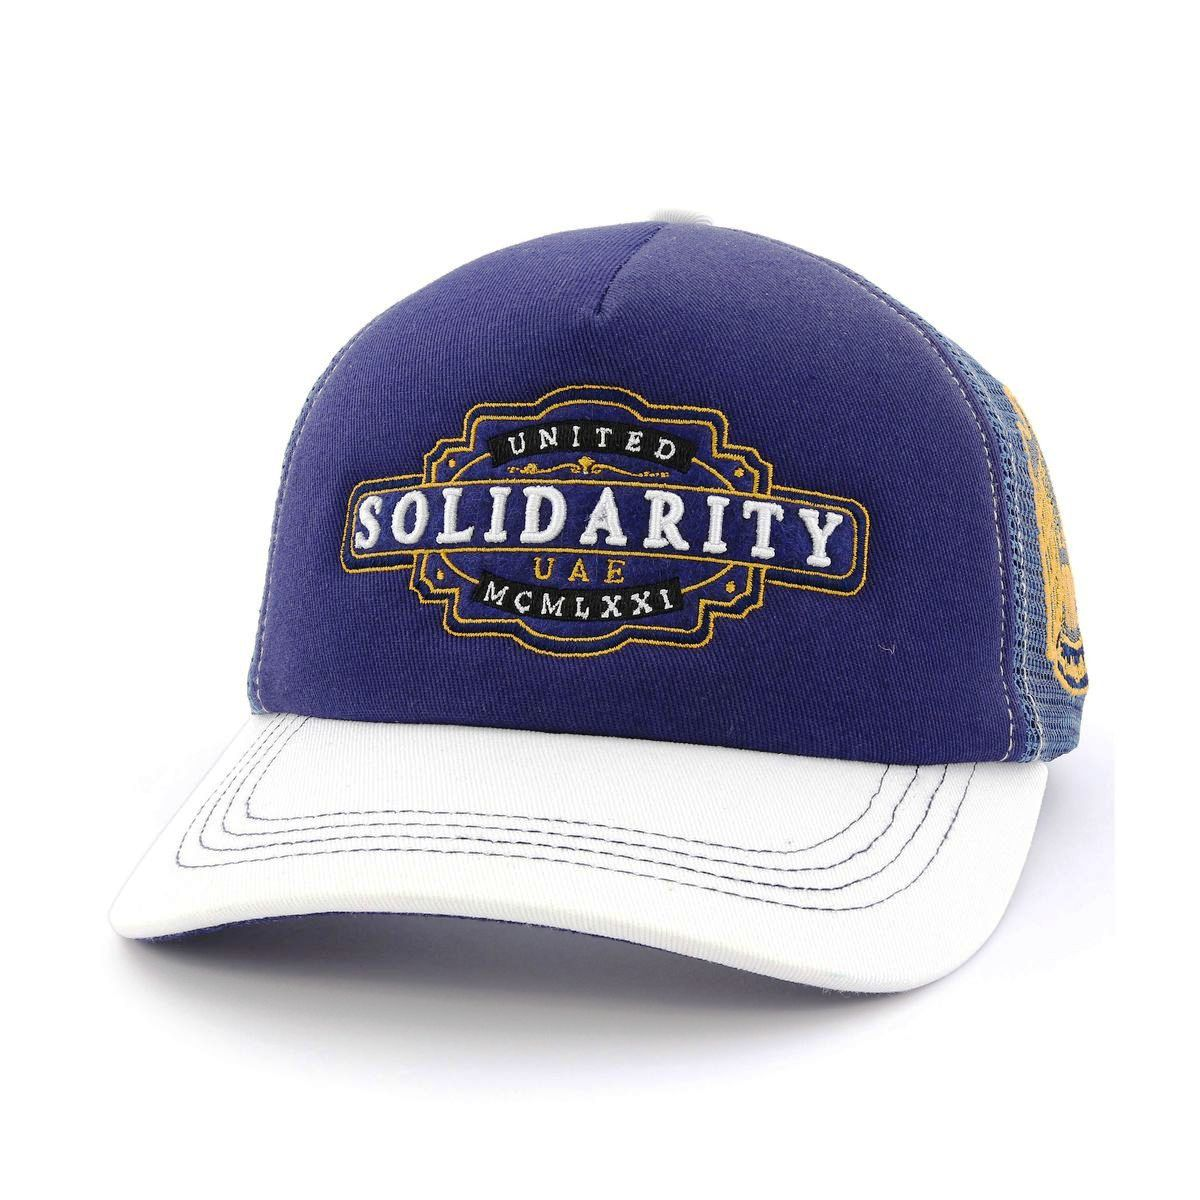 B180 Solidarity 2 Adult Unisex Cap Blue/White Limited Edition